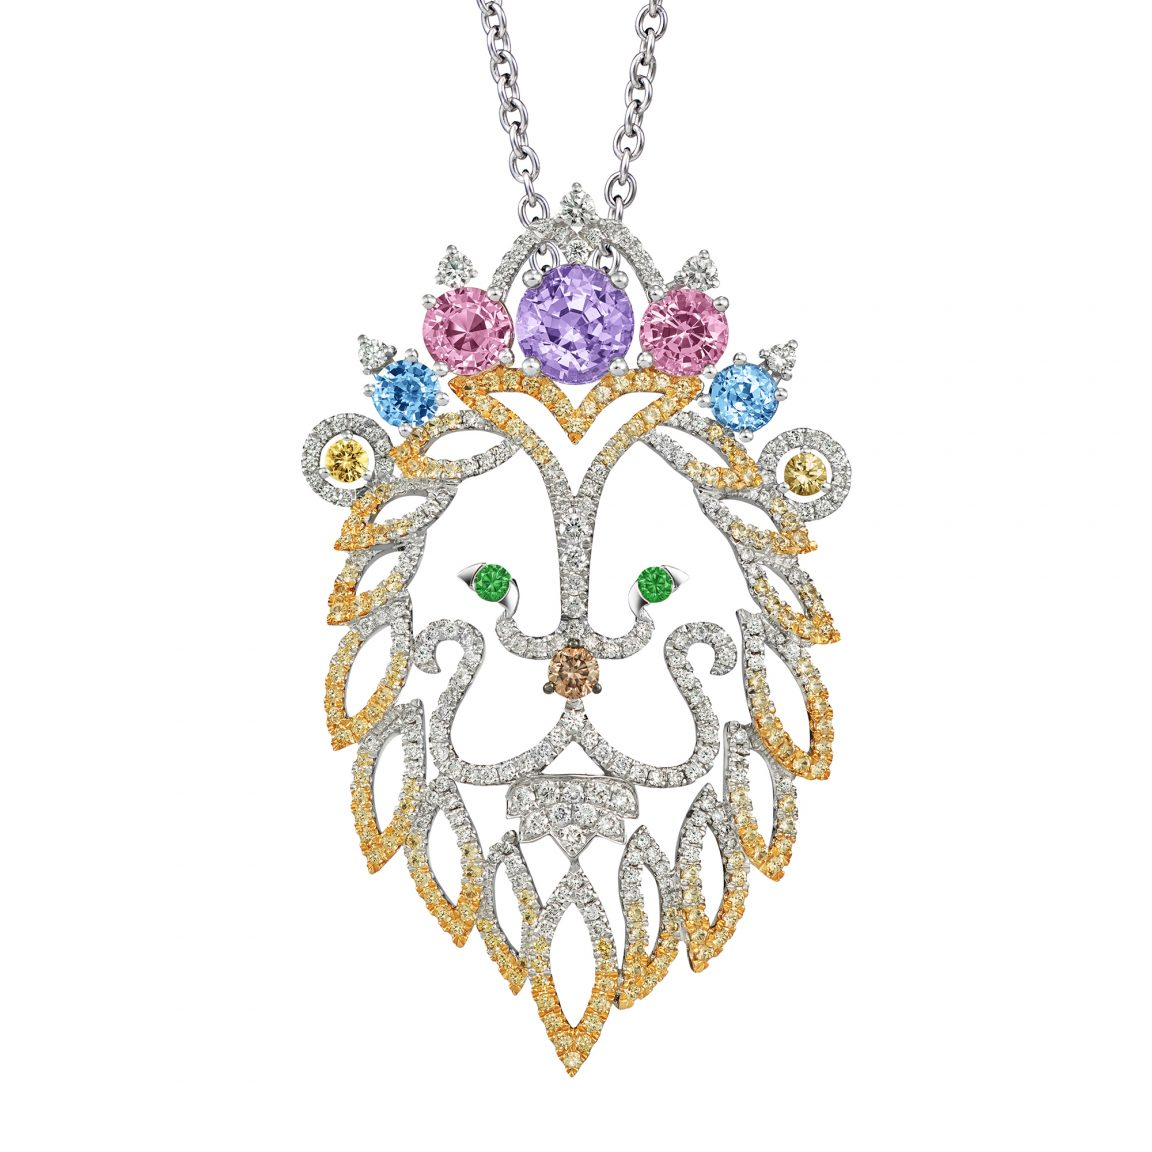 The Reigning Leo Necklace